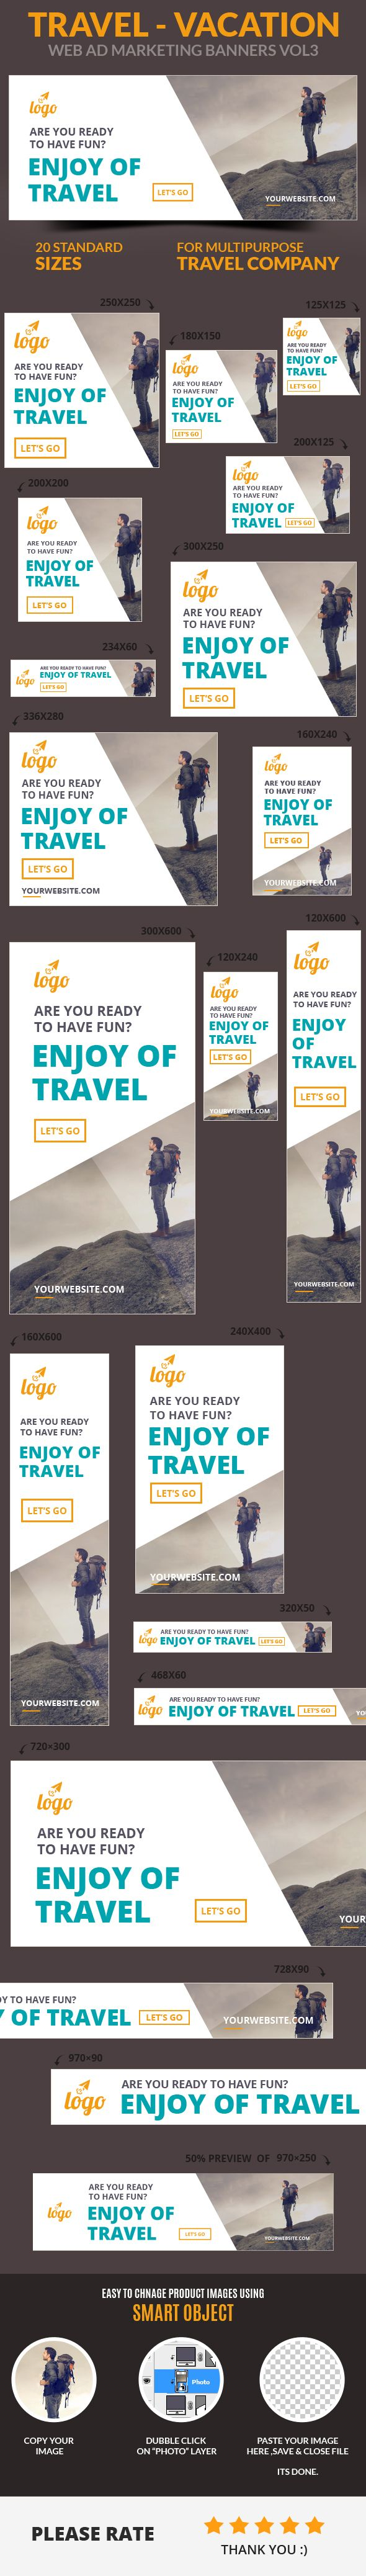 A set of Travel – Vacation Web Ad Marketing Banners Vol3 is comes with 20 standard dimensions which also meet Google adwords banners sizes. It included all the layered psd file where you can easily change its text, color & shapes as per your requirements.